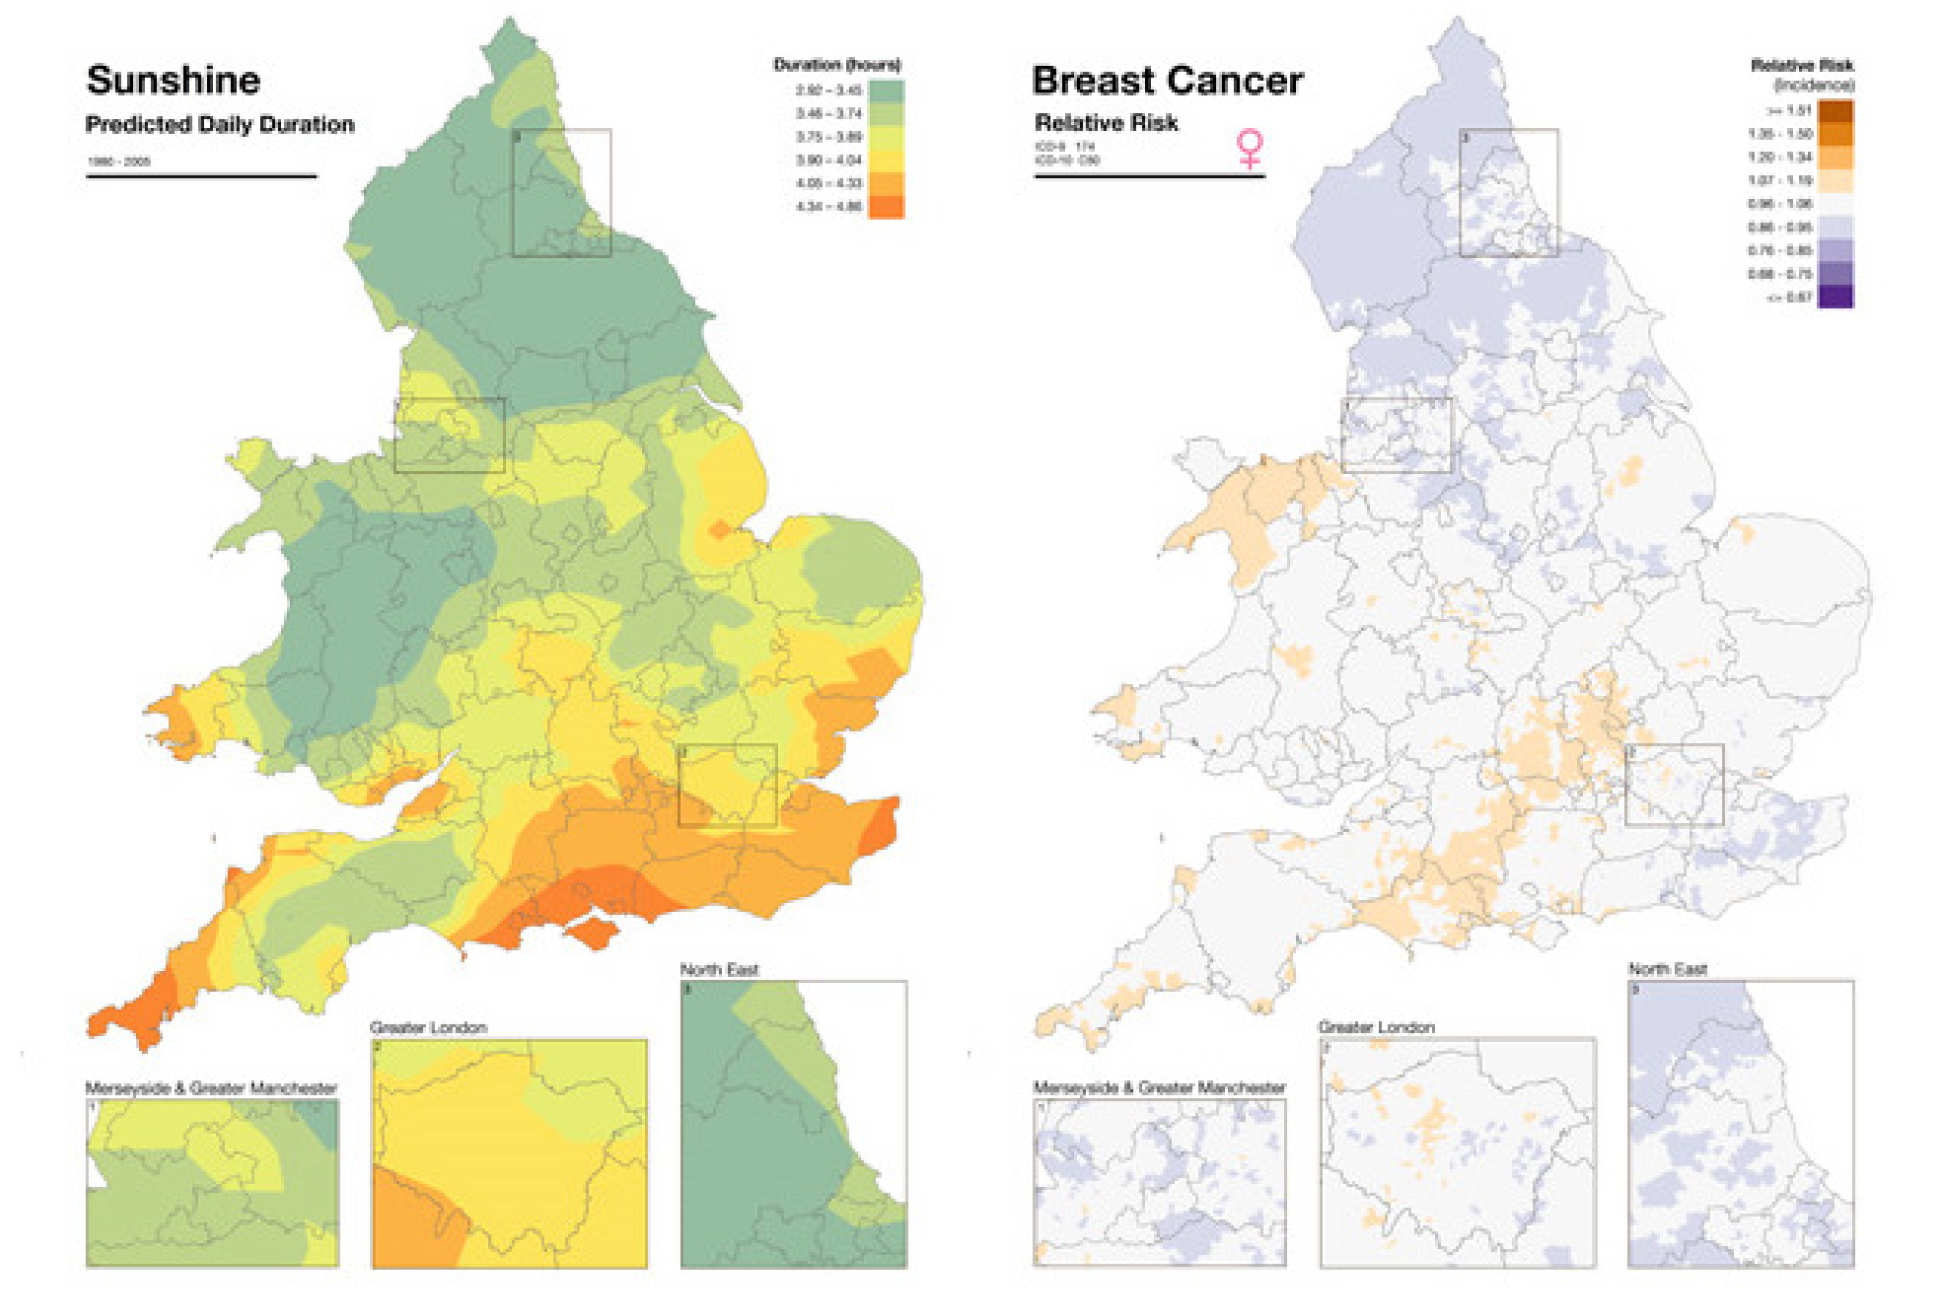 Atlast maps of sunshine duration and relative risk of breast cancer for the England and wales